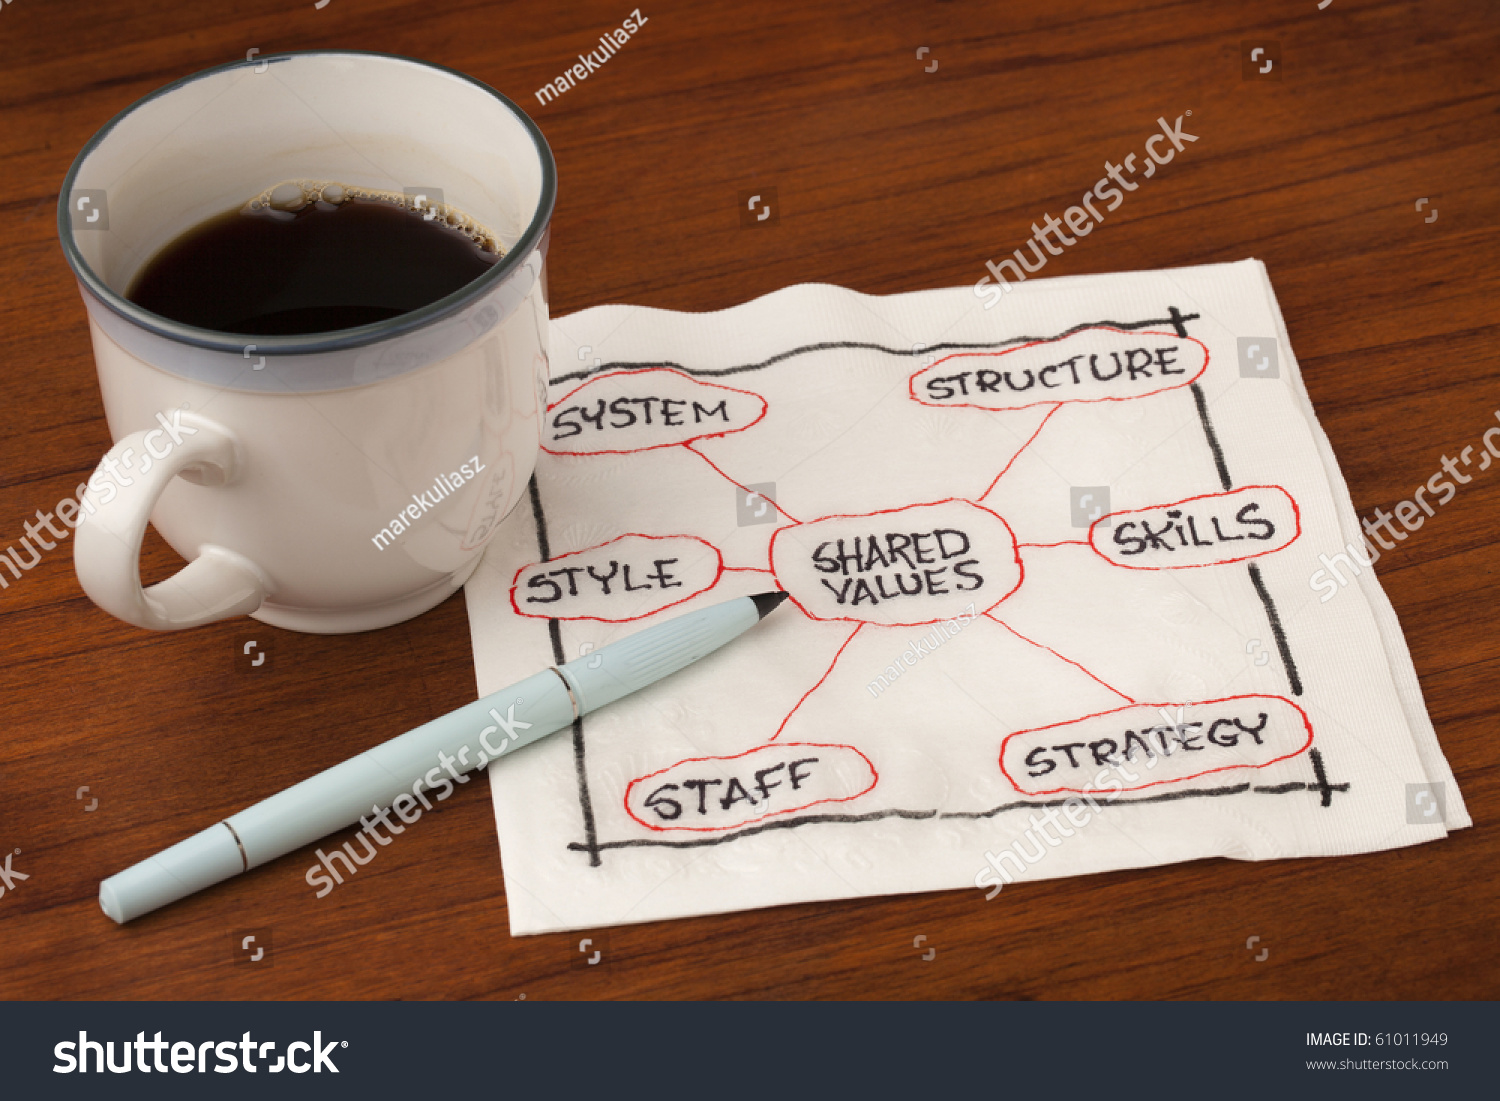 Stylistic analysis a cup of